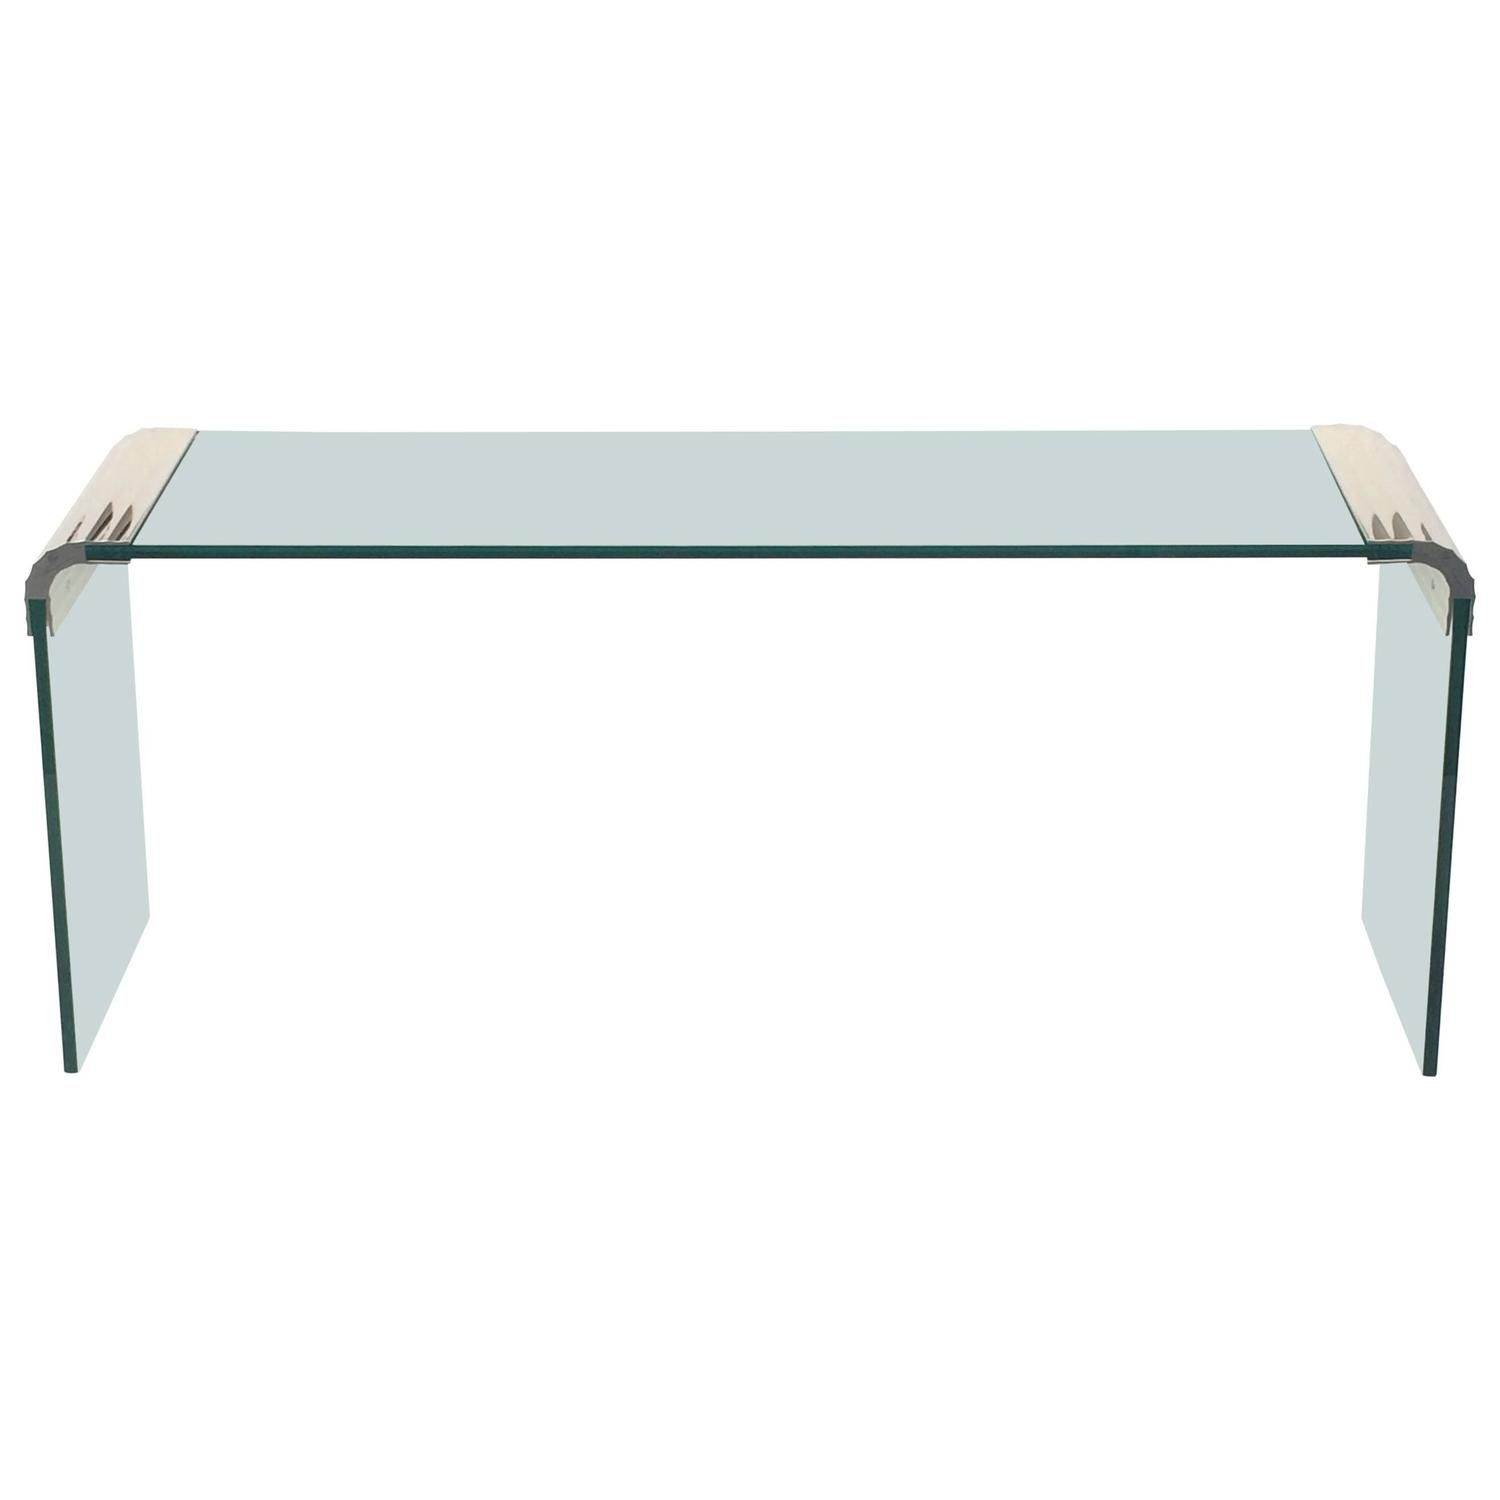 Scalloped nickel and glass console table by leon rosen for for Table a manger transparente